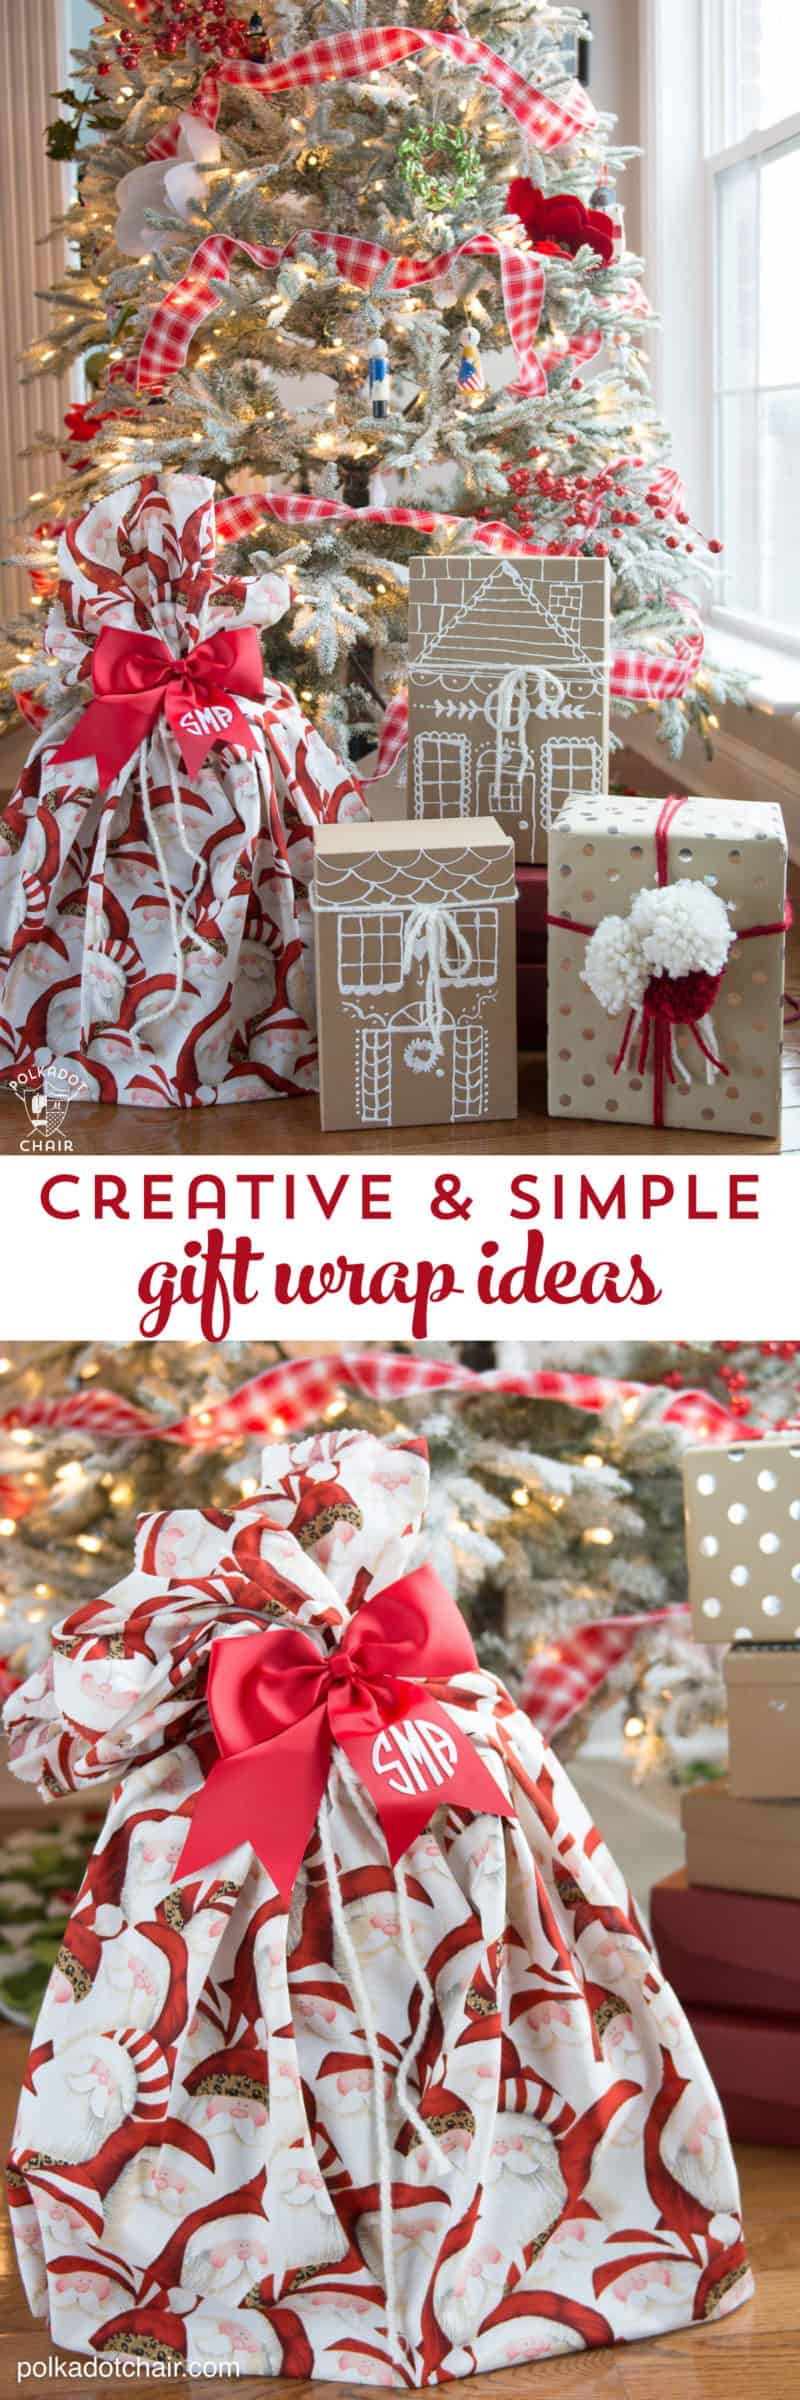 diy gift wrap ideas cfreating a homemade Santa sac and others with craft paper